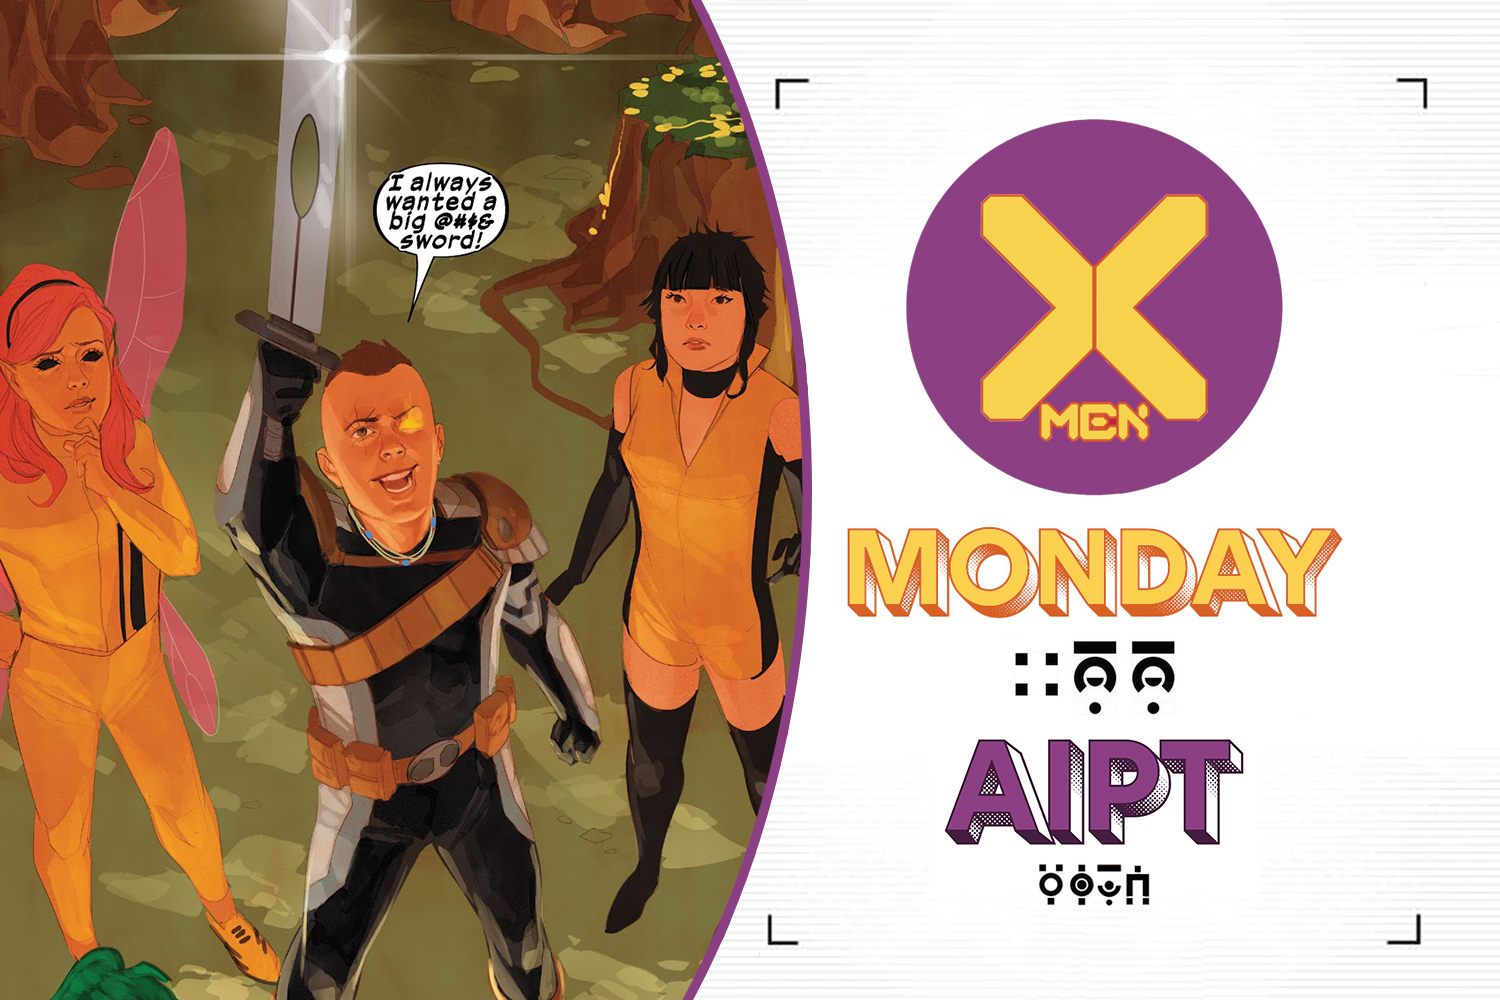 Welcome, X-Fans, to another uncanny edition of X-Men Monday at AIPT!